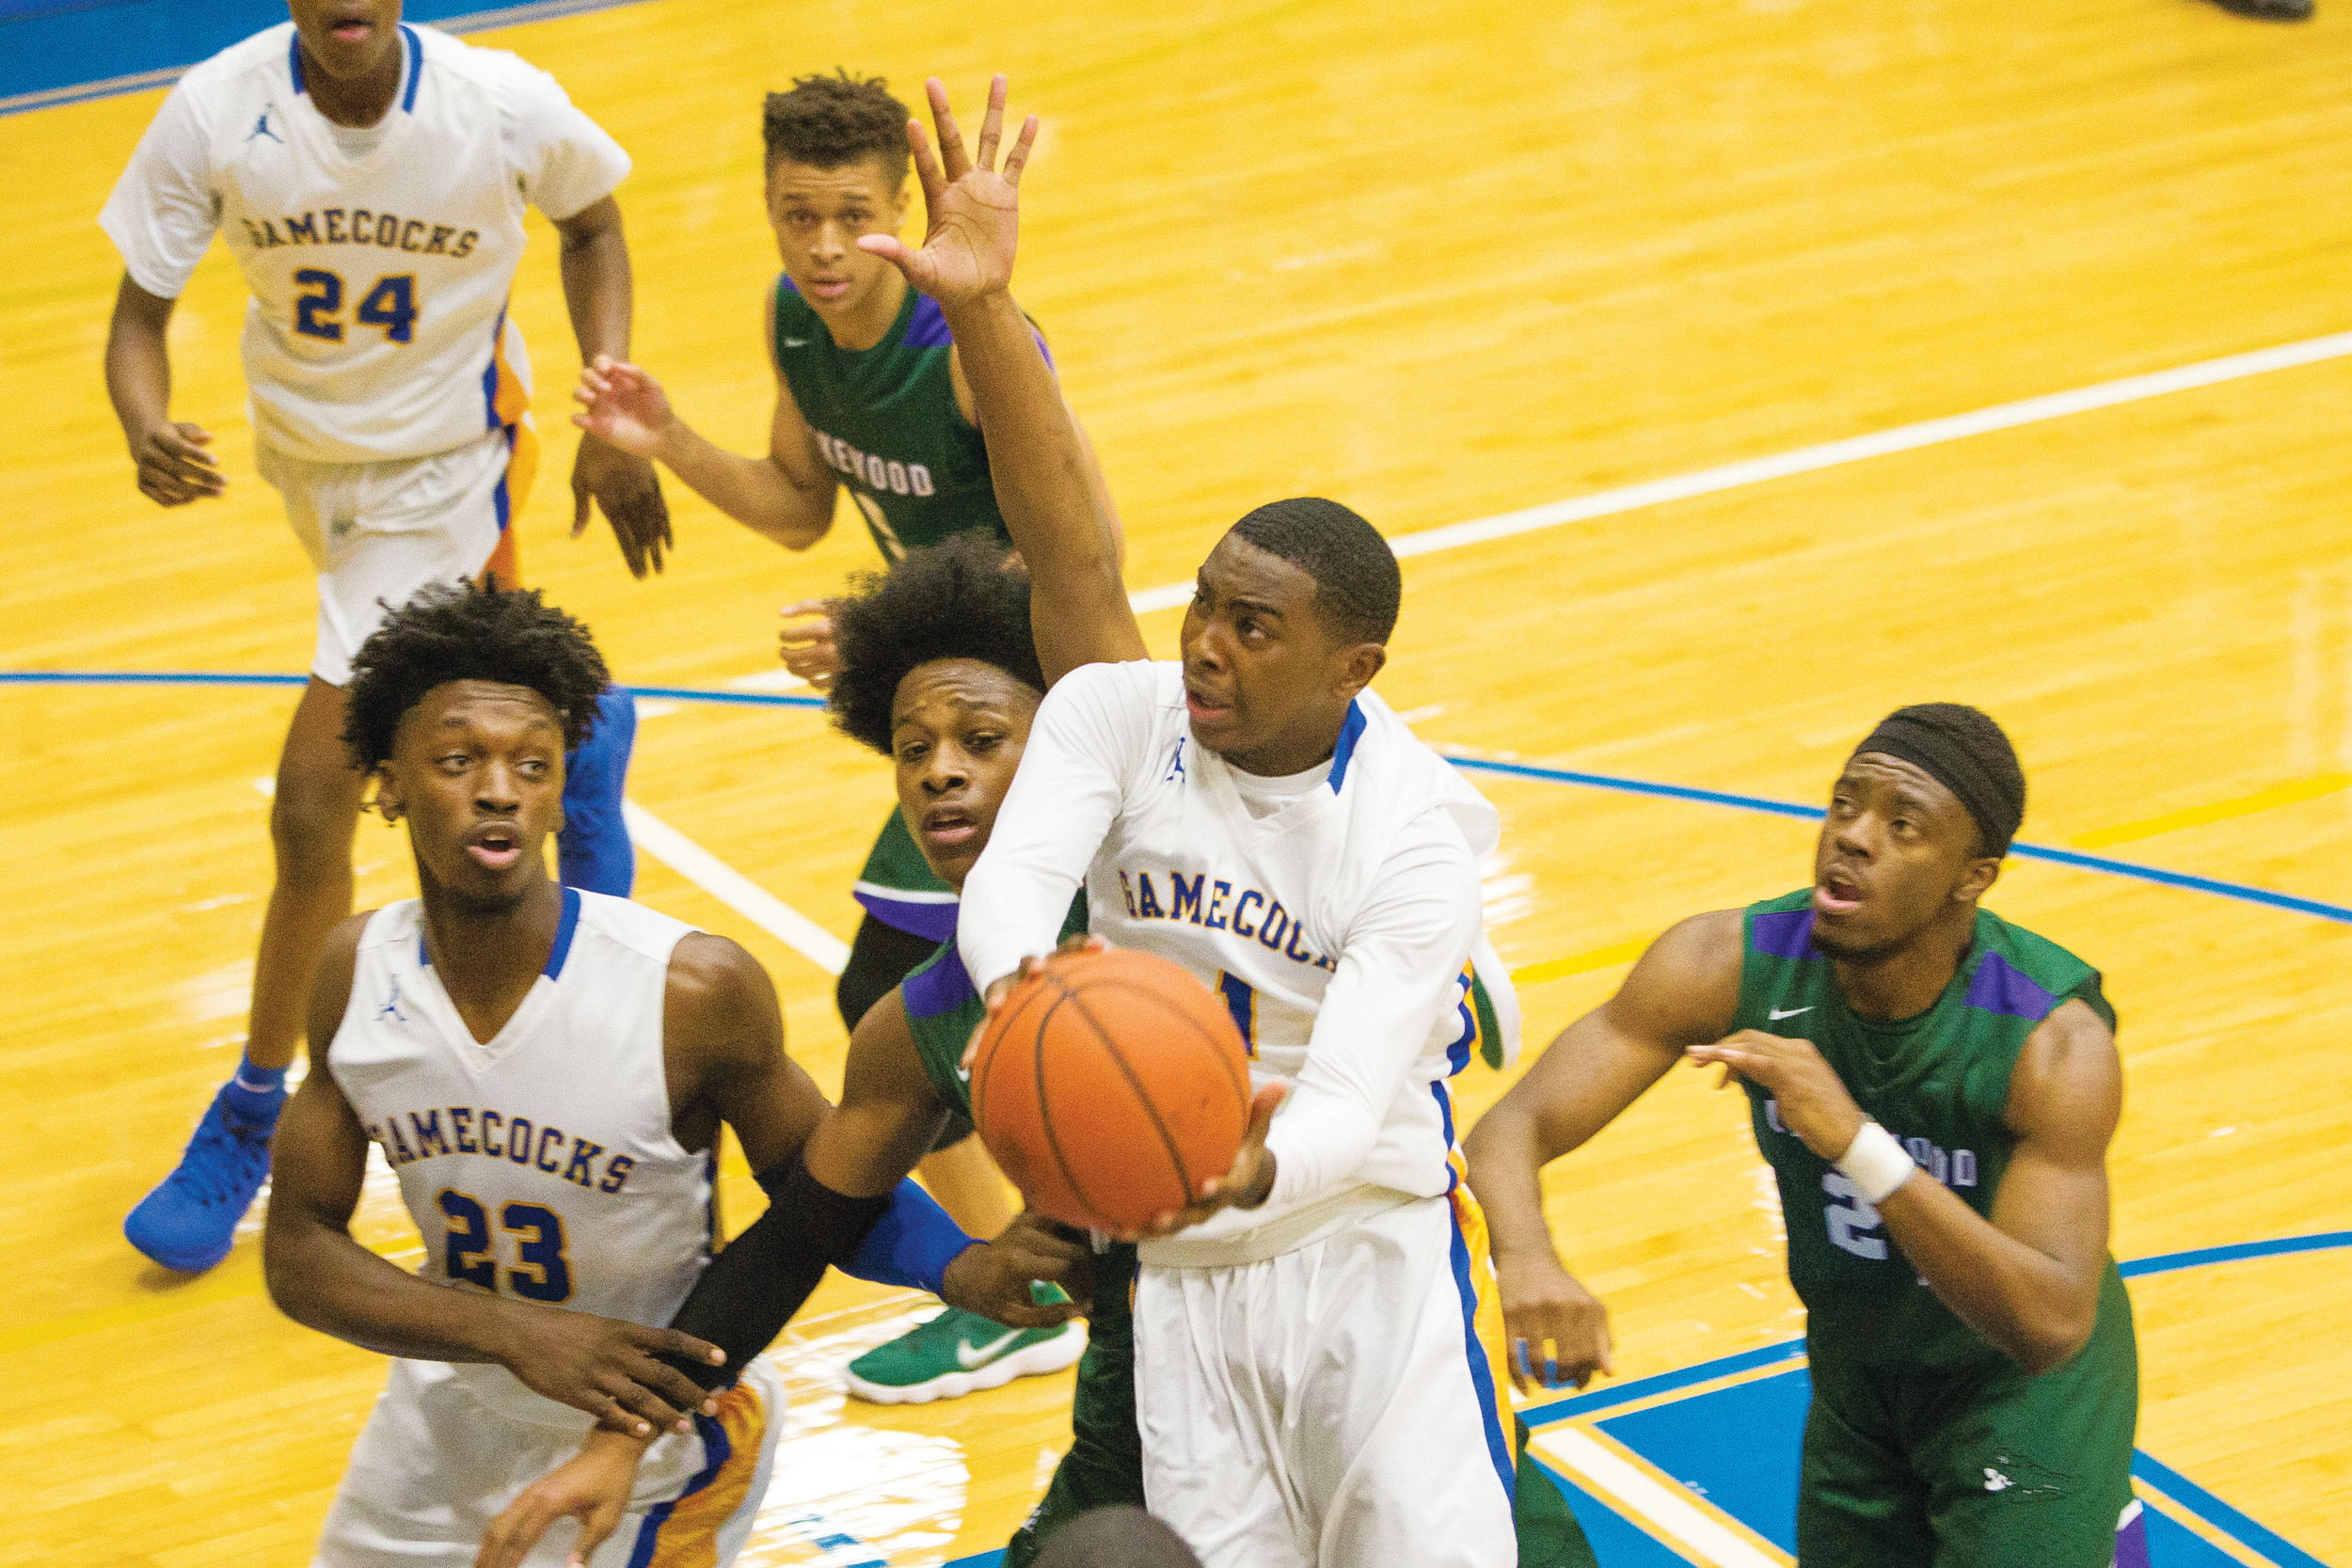 Sumter's Zykiem Jackson (1) drives to the basketball during the Gamecocks' 50-46 overtime victory over Lakewood on Thursday at the SHS gymnasium.